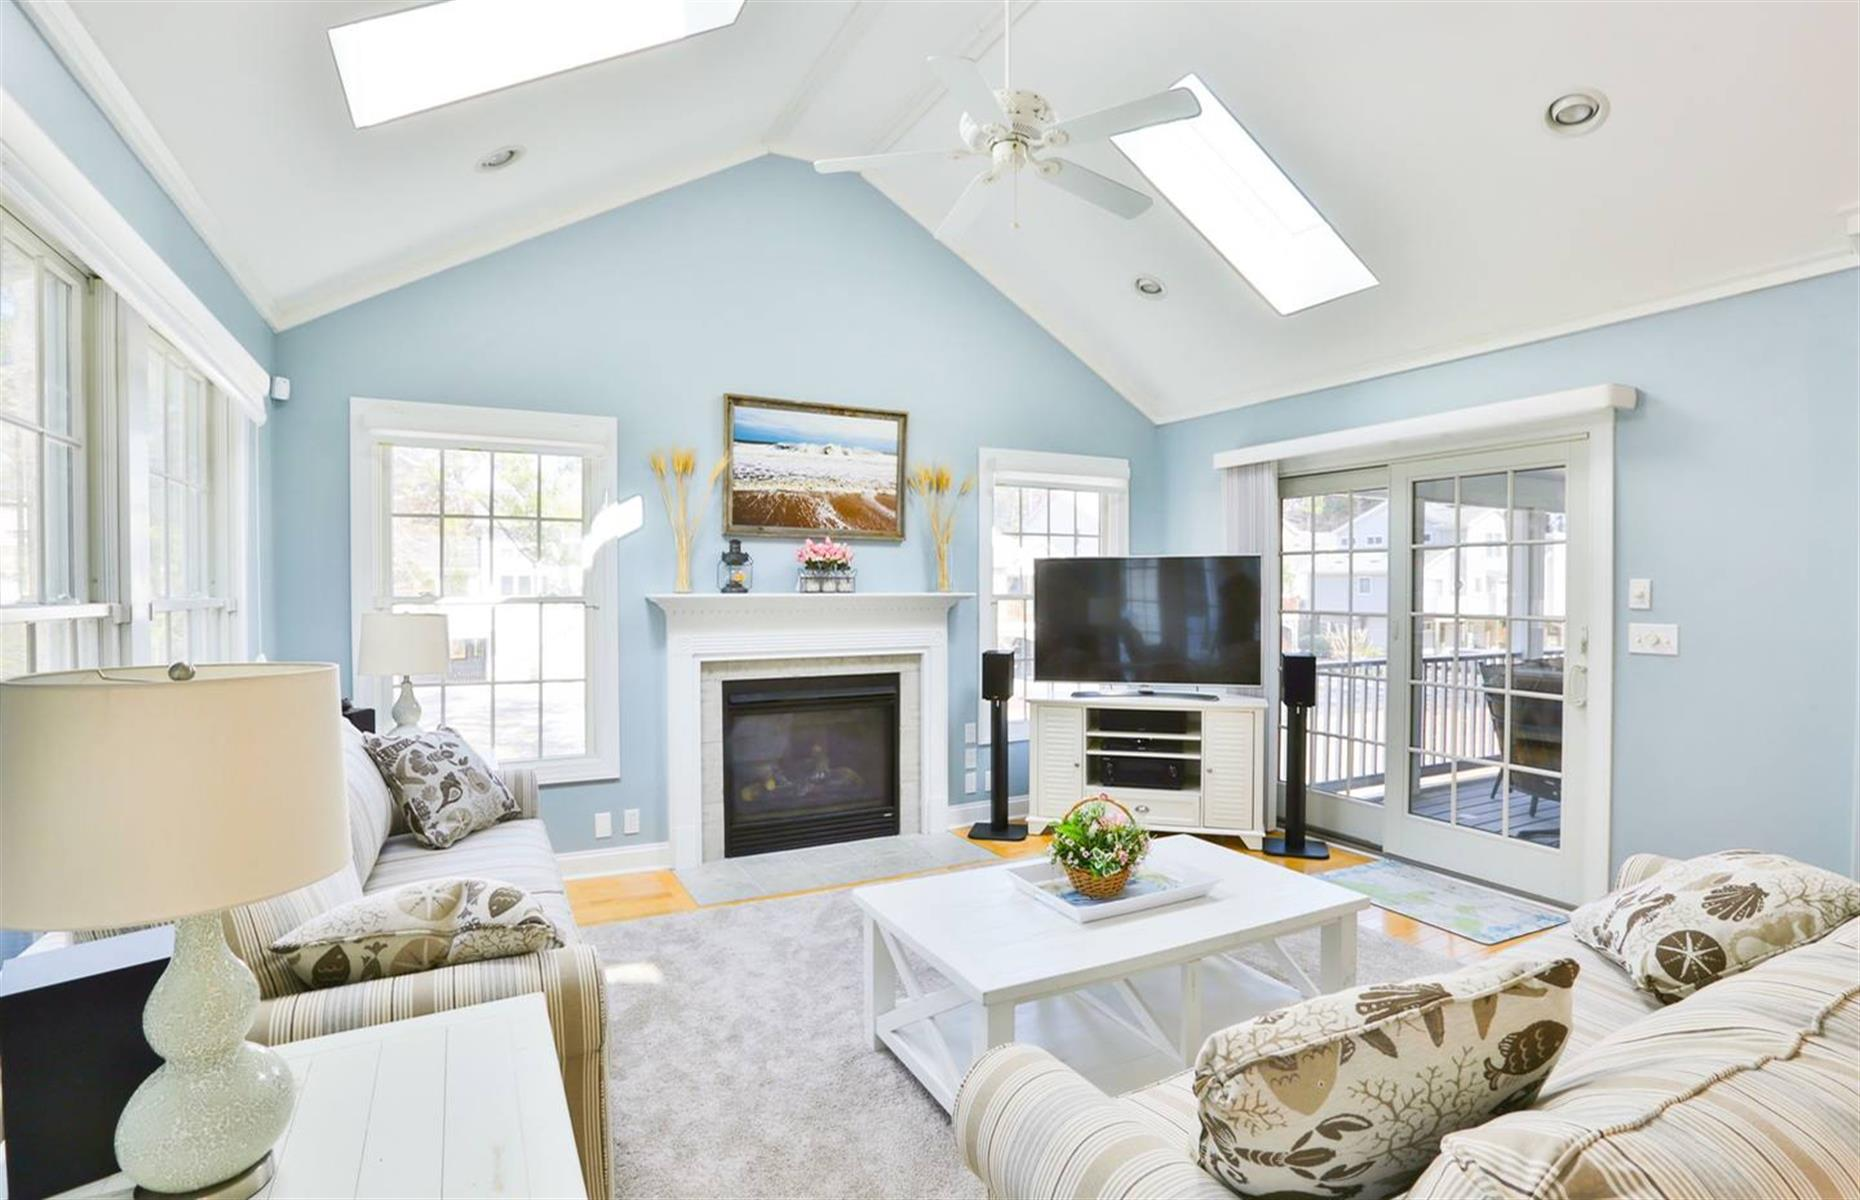 Slide 9 of 52: The definition of a coastal charmer, this Delaware home offers a cozy retreat in the heart of Bethany Beach. Just a 15-minute walk from the ocean, the house has everything you need for a peaceful break by the beach. There are four bedrooms, a beautiful kitchen and four decks, including a screened entertaining area.